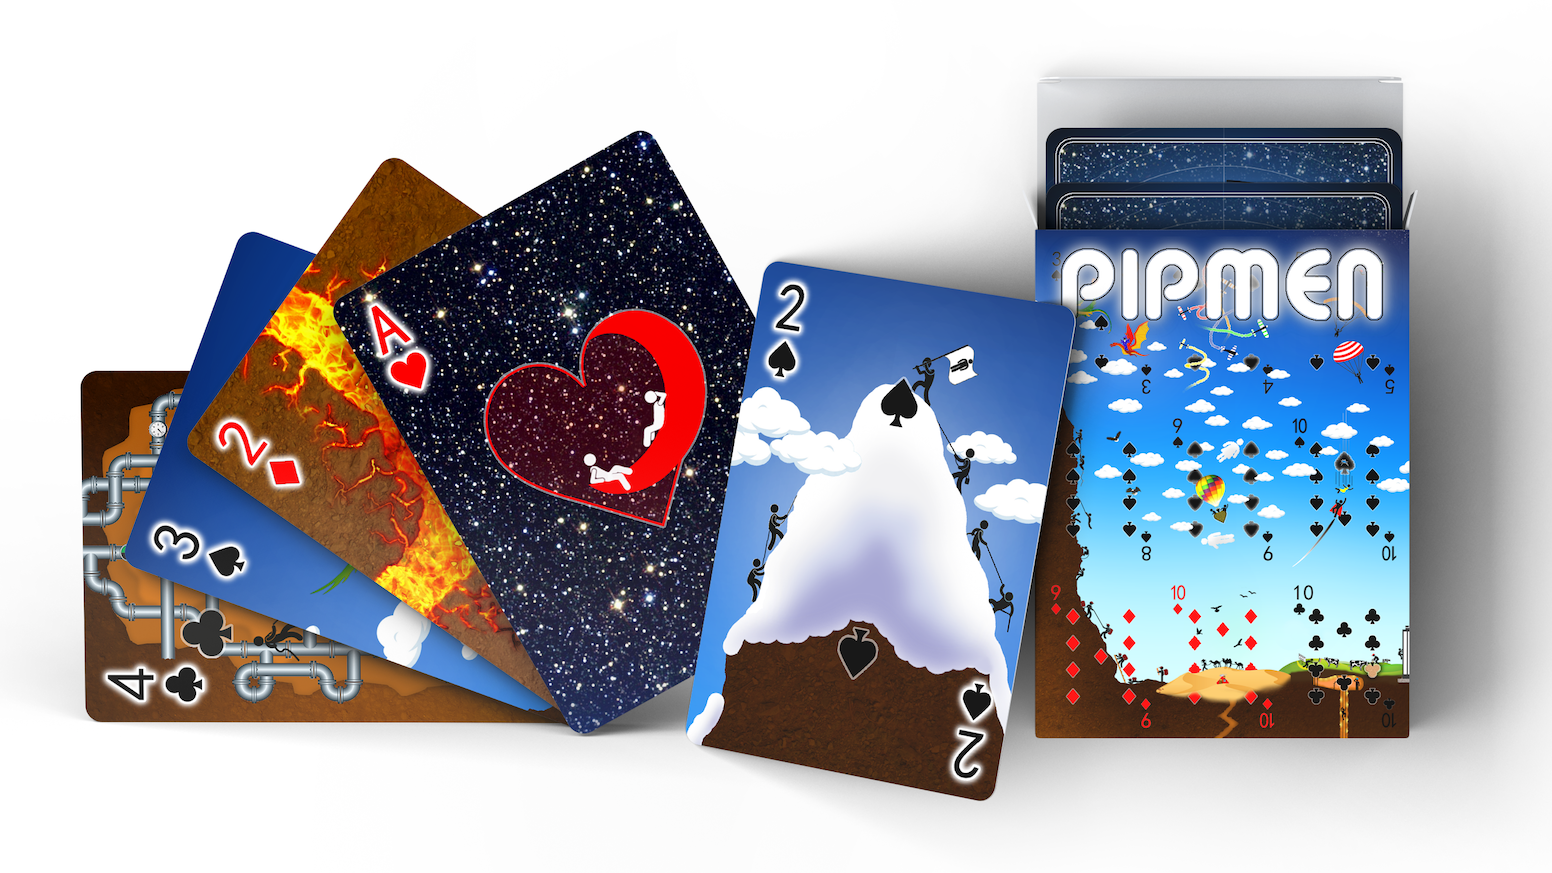 Pipmen world full art playing cards by elephant playing cards pipmen world full art playing cards biocorpaavc Choice Image